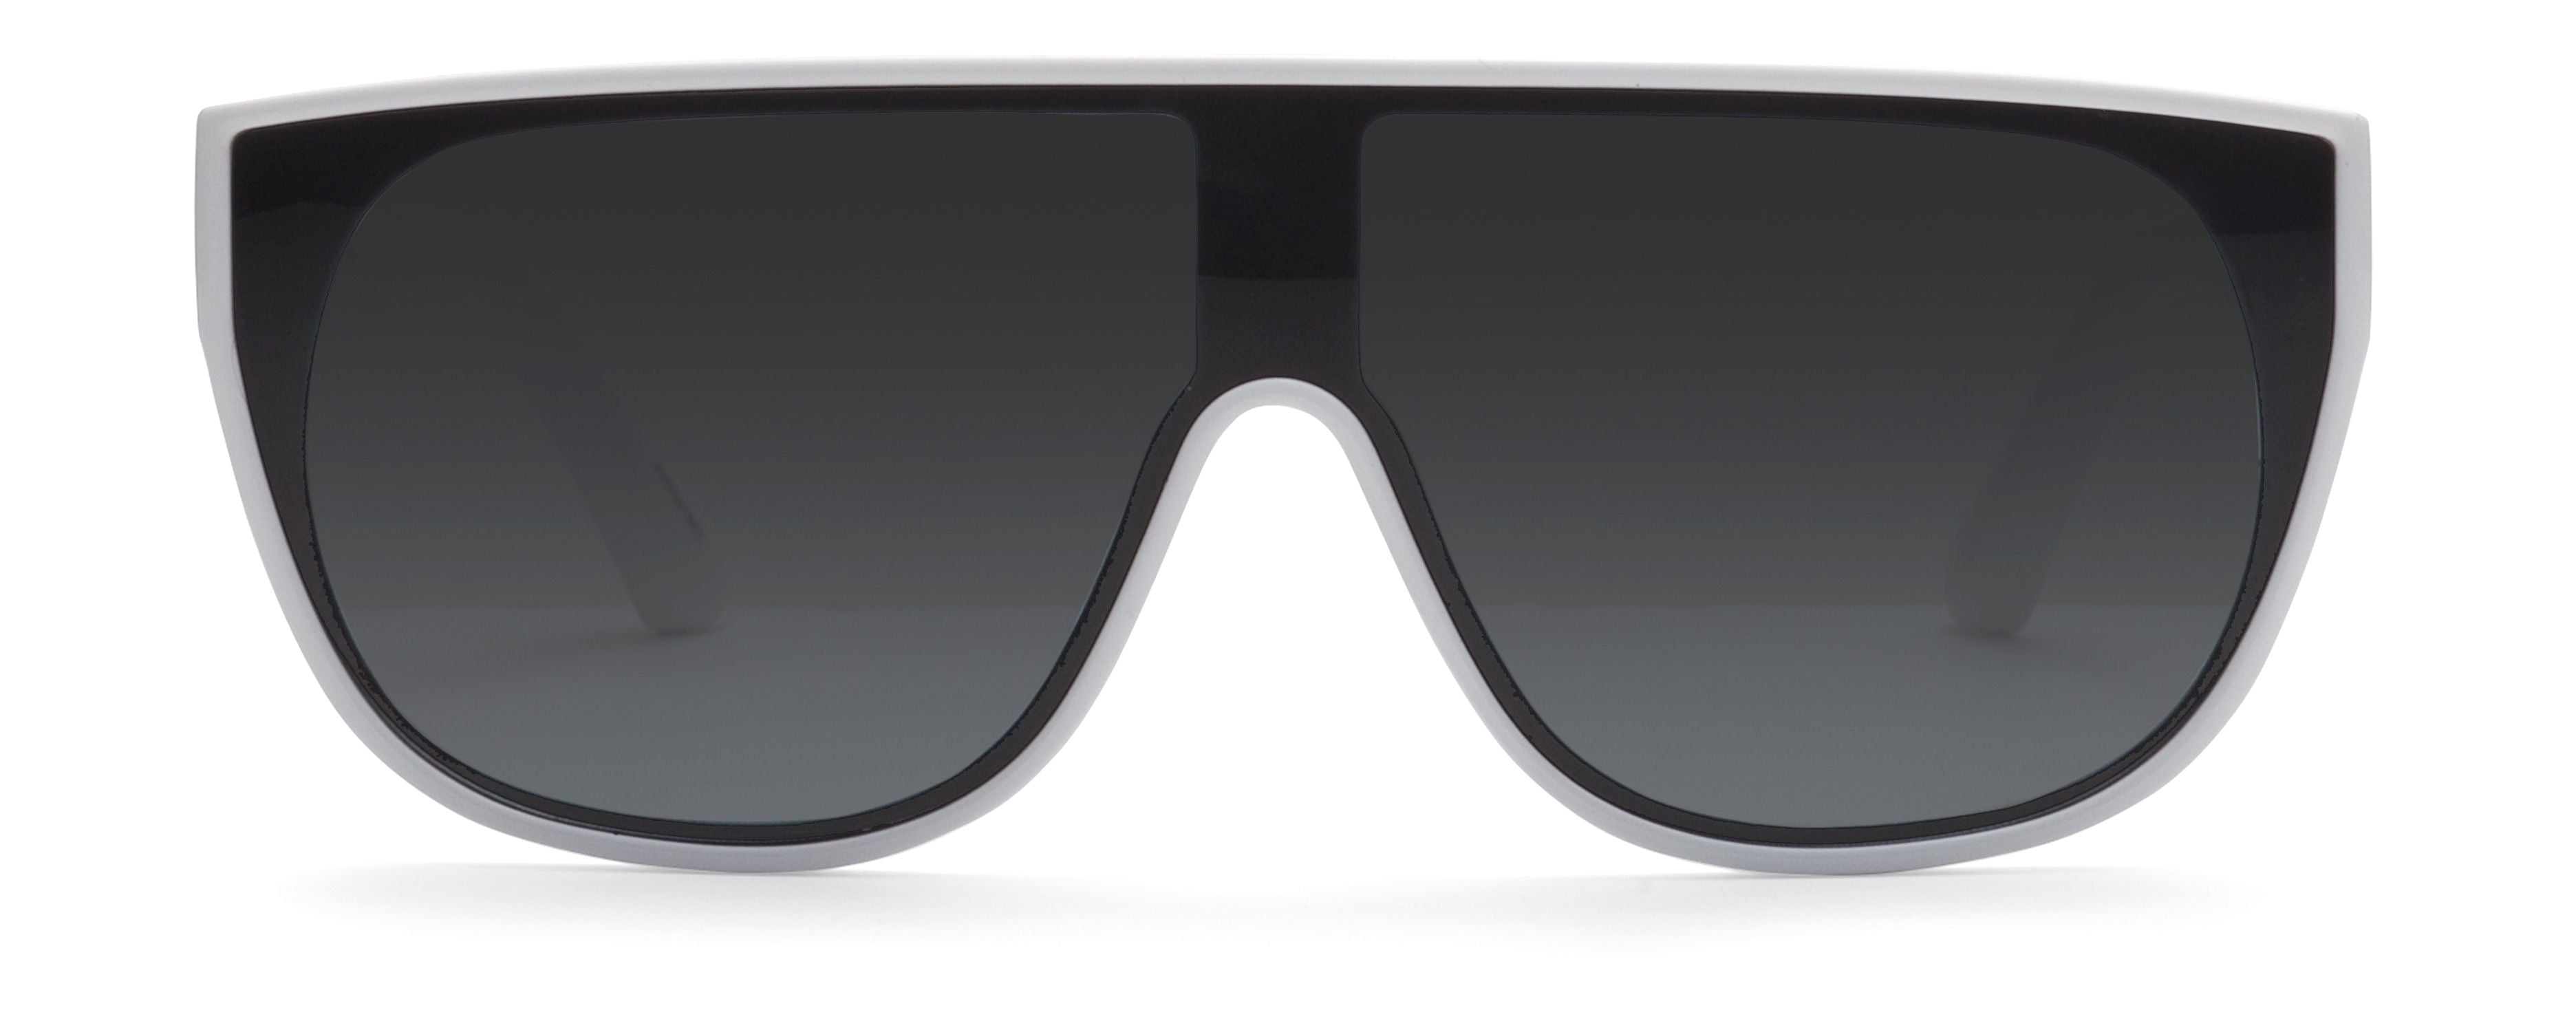 POW White JUNiA Kids Sunglasses